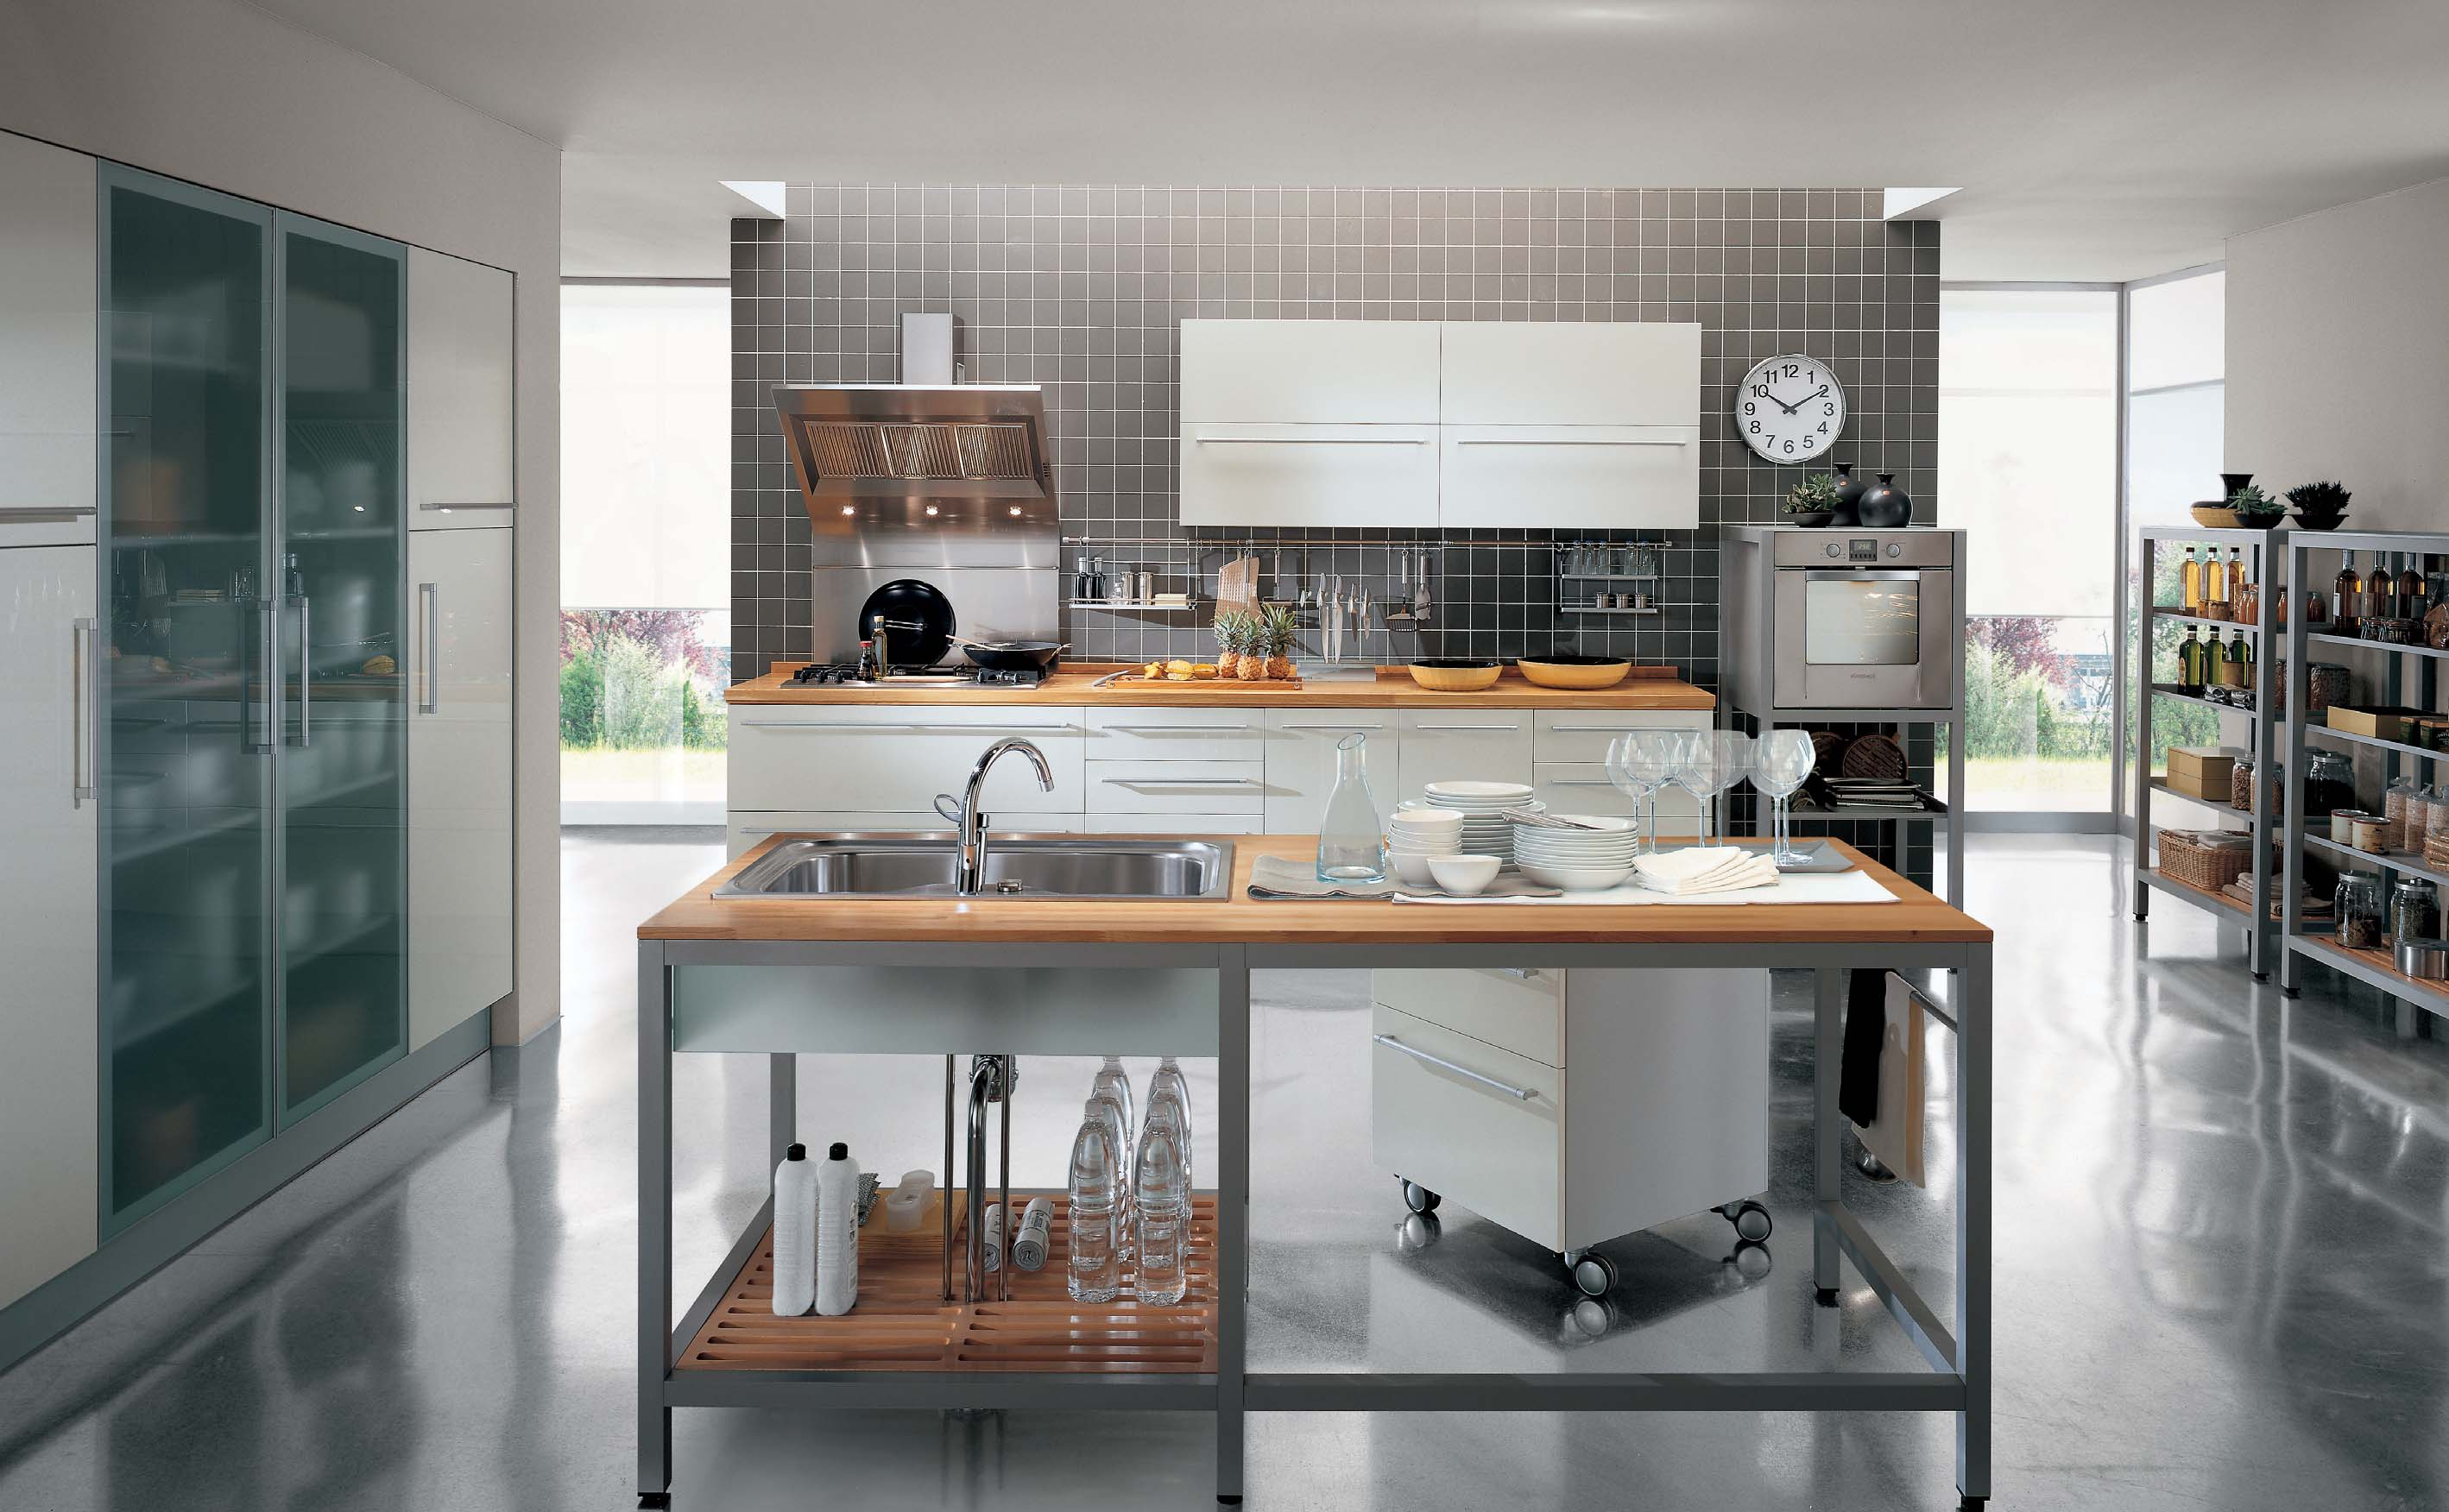 Excellent Simple Modern Kitchen Design 2837 x 1752 · 366 kB · jpeg